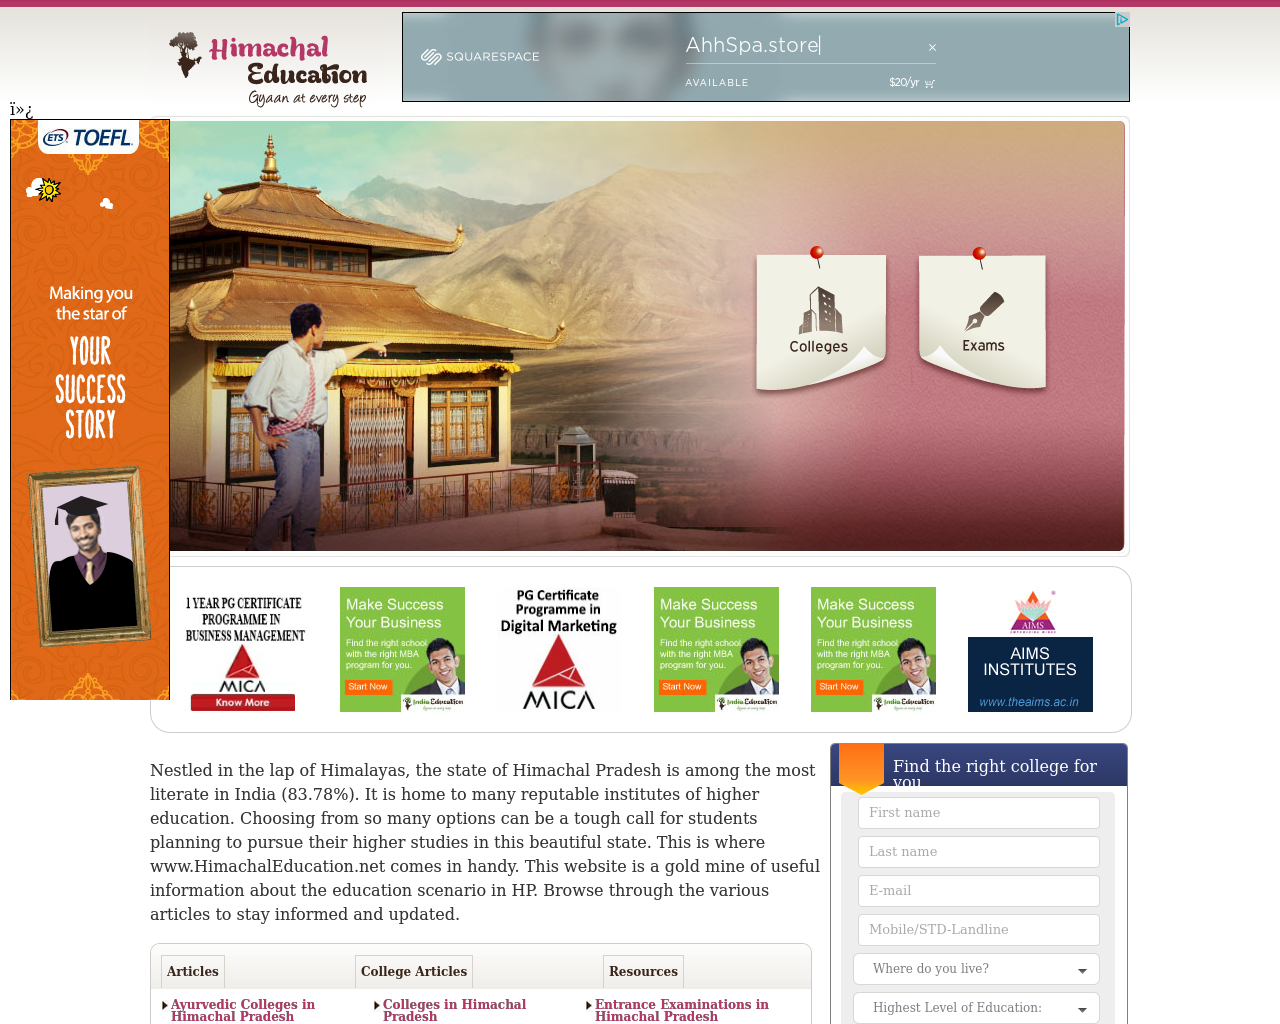 Himachal-Education-Advertising-Reviews-Pricing